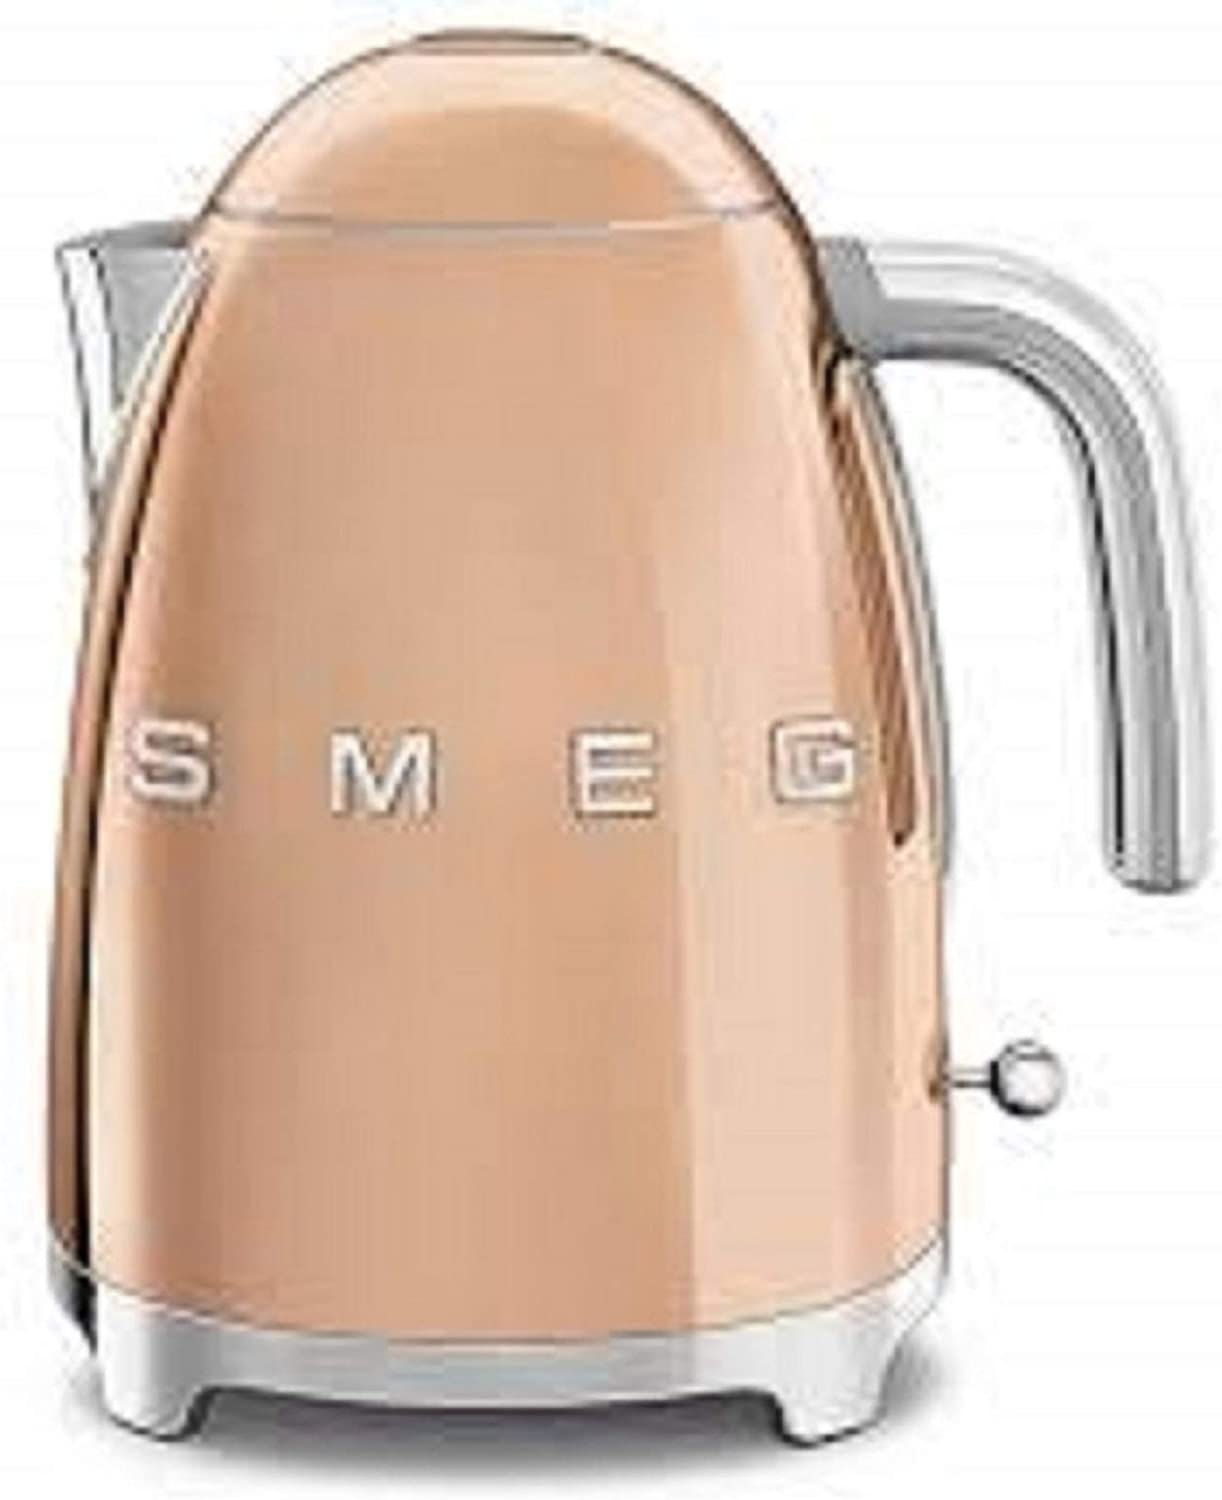 Smeg Electric Kettle, 1.7L